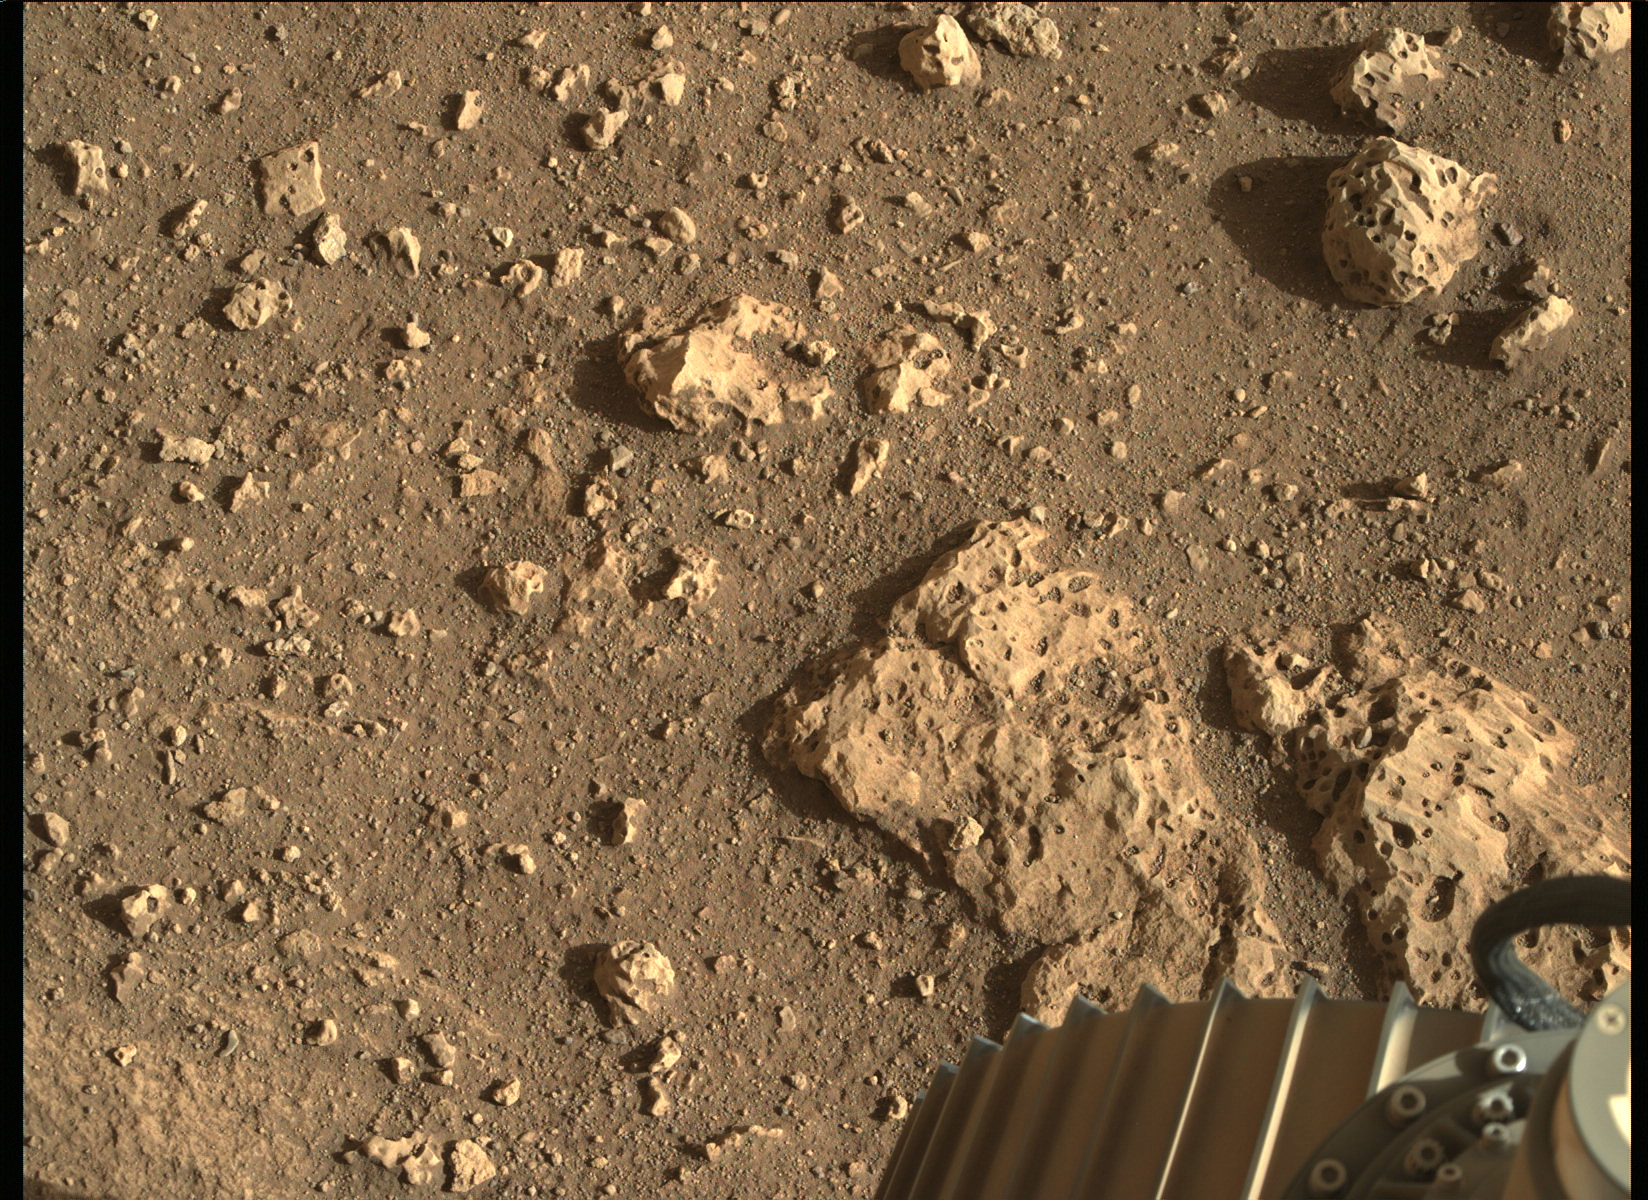 Mars has rocky surfaces too!